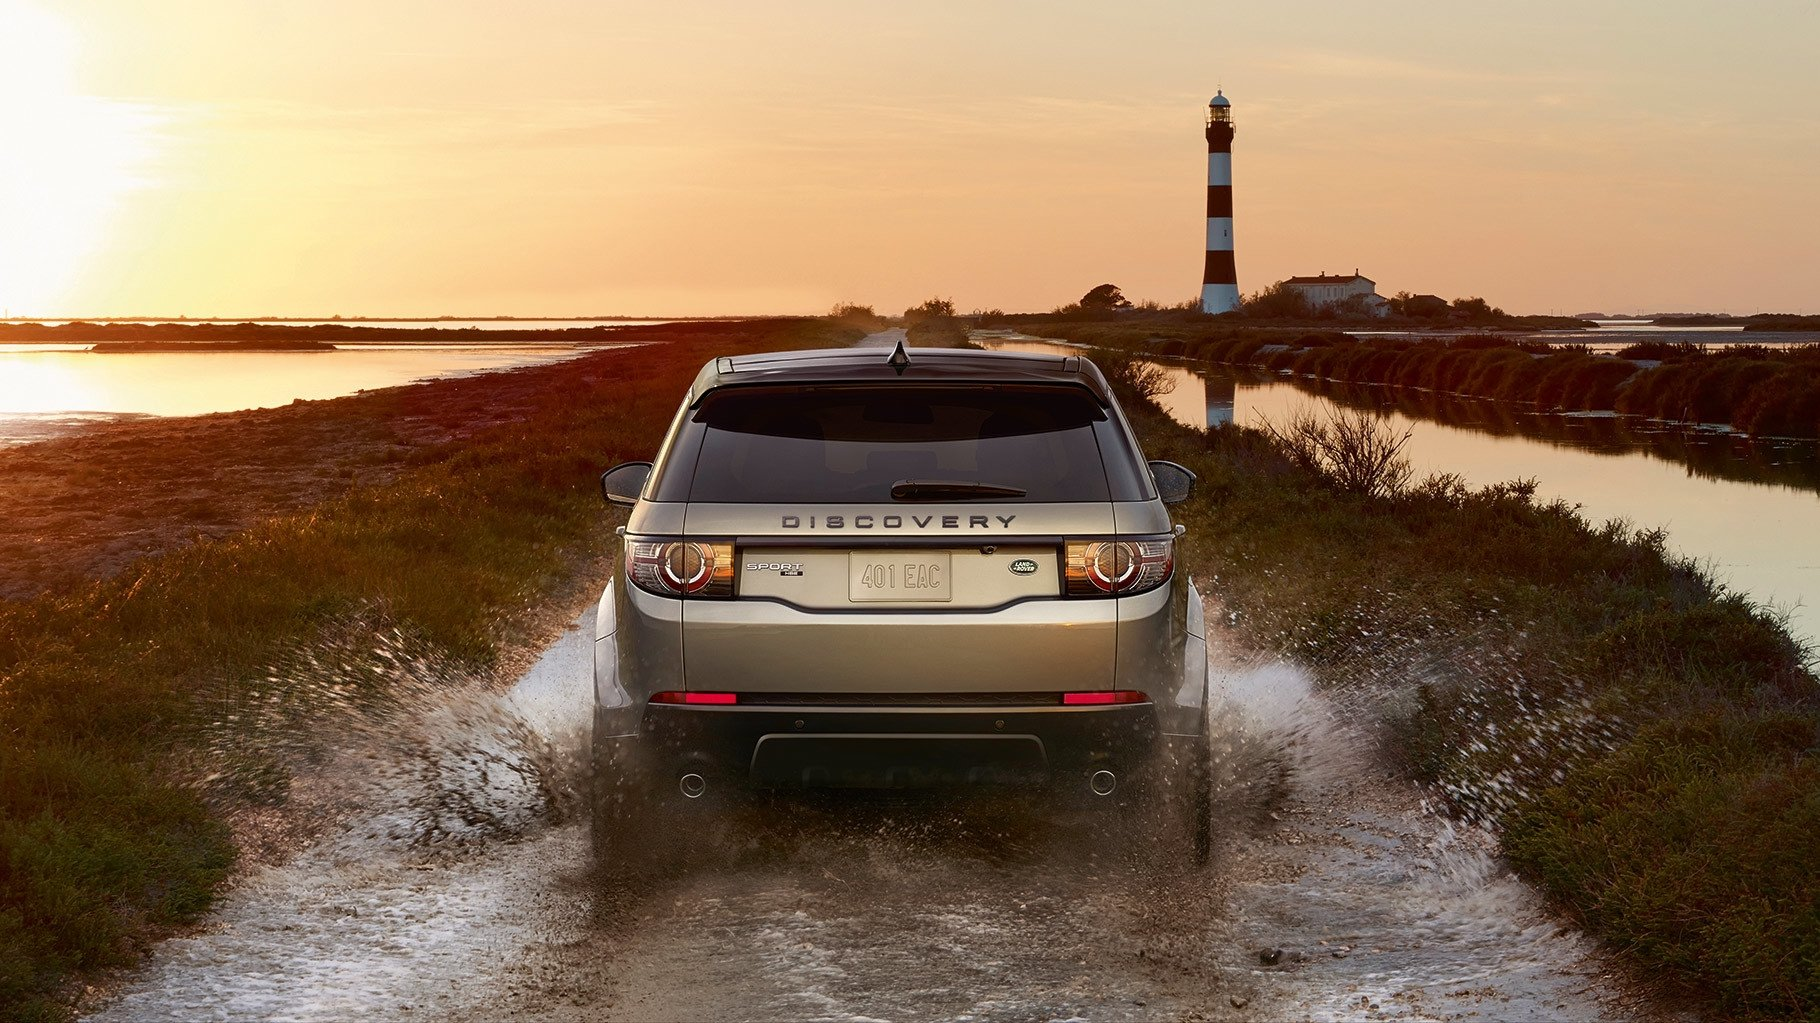 2017 Land Rover Discovery Sport rear end view driving through water